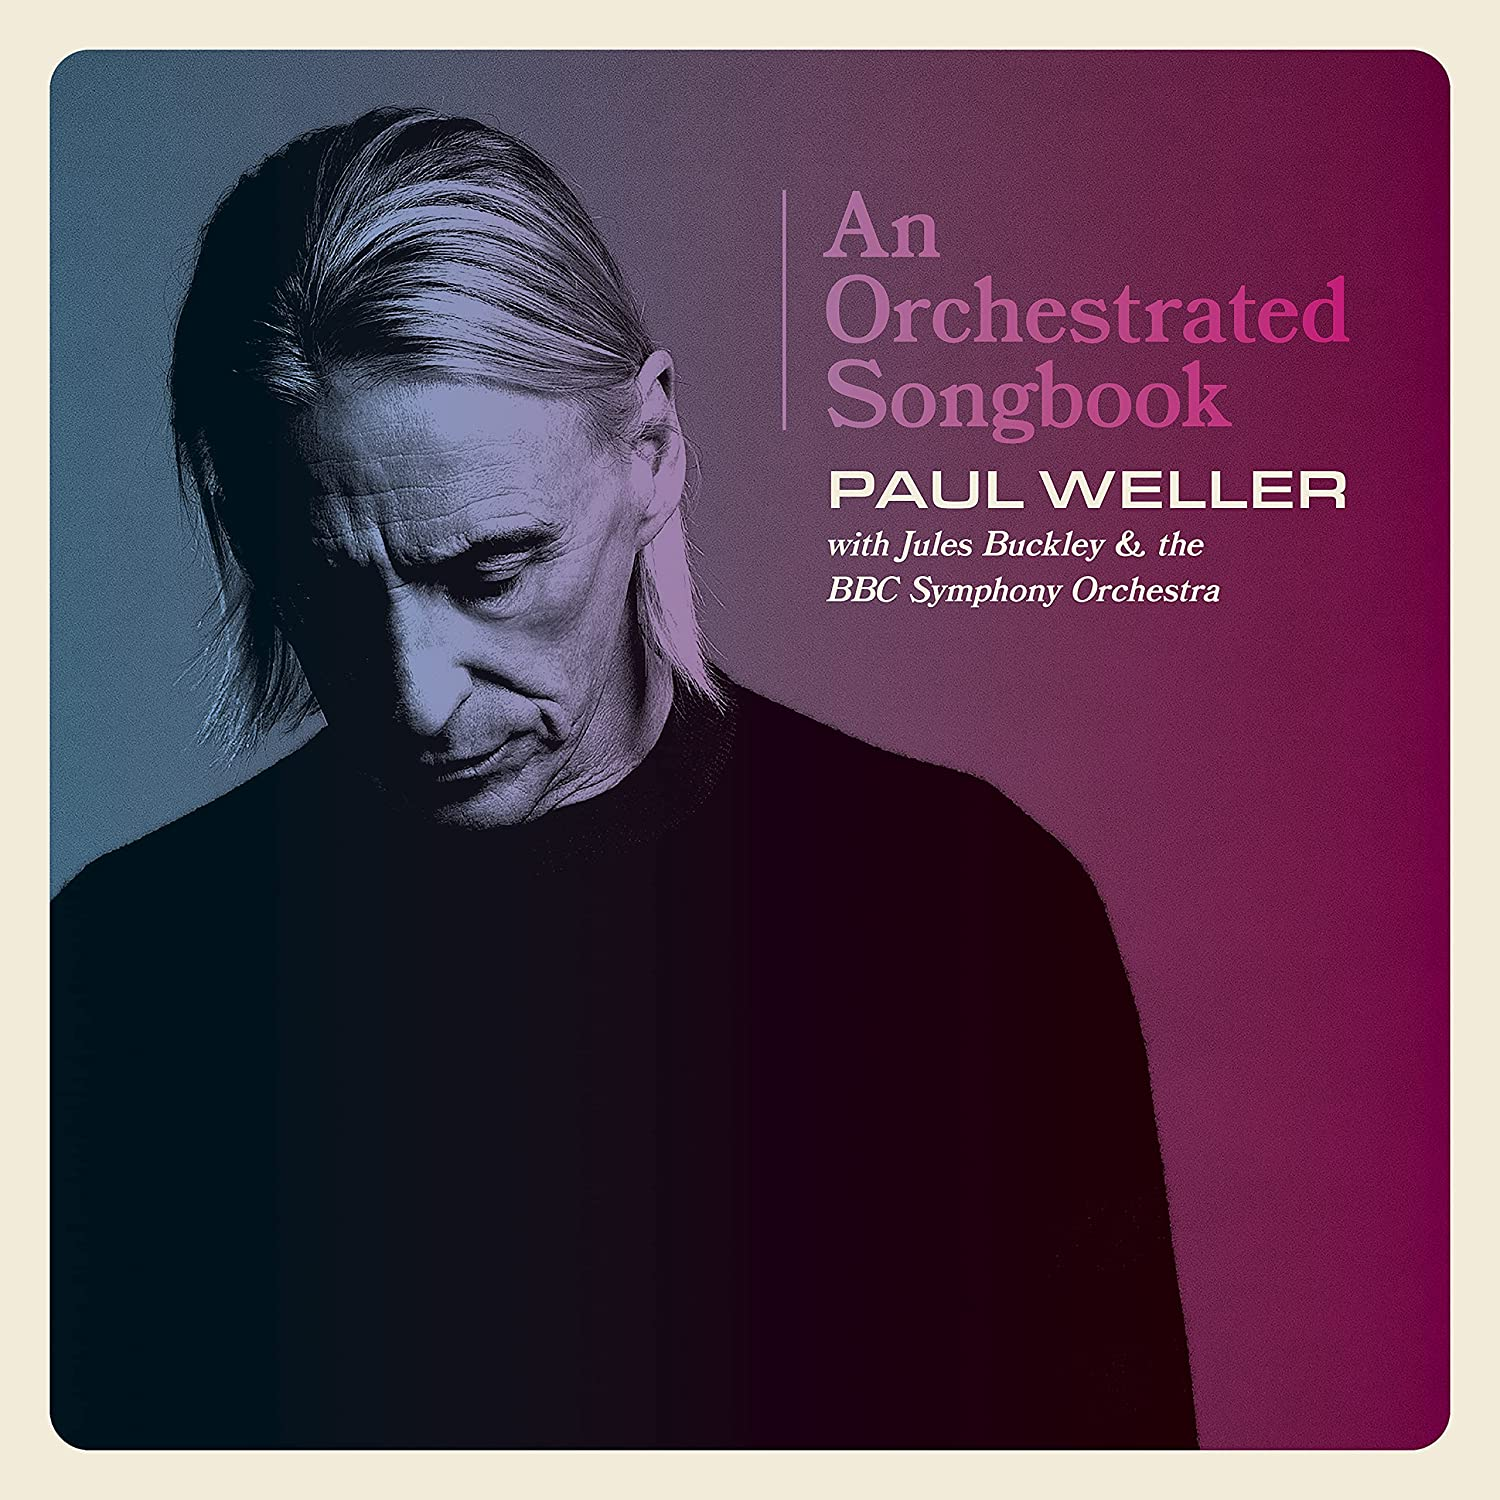 Paul Weller / An Orchestrated Songbook